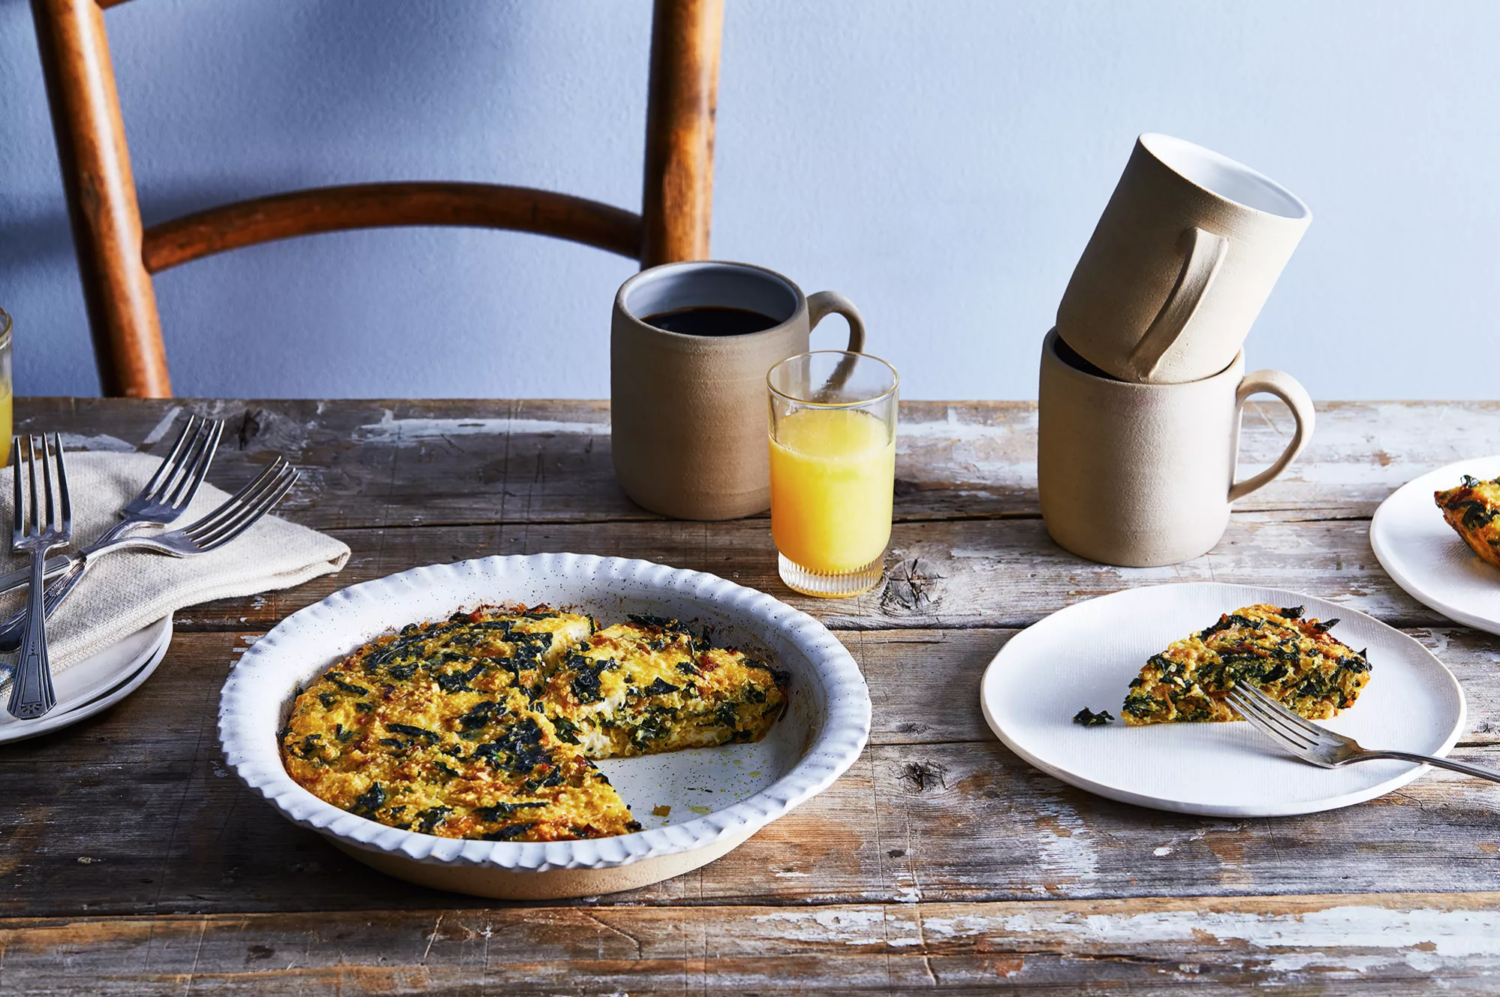 Quinoa and Kale Crustless Quiche from Food52